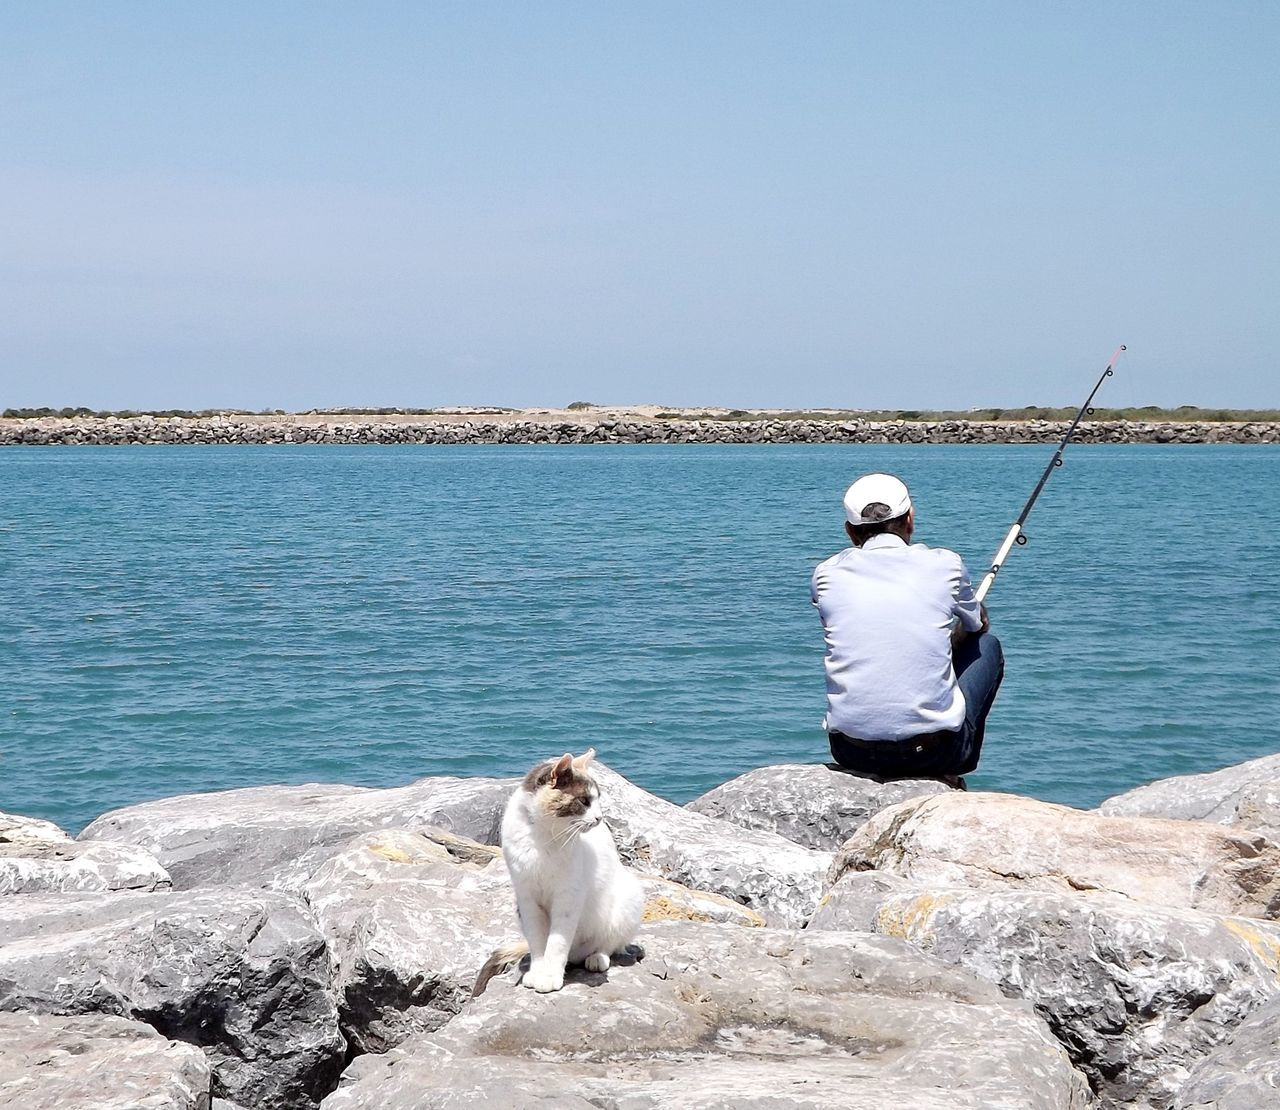 Beauty In Nature Casual Clothing Clear Sky Day Dog Domestic Animals Fishing Pole Full Length Horizon Over Water Leisure Activity Lifestyles Mammal Men Nature One Animal One Person Outdoors Pets Real People Rear View Rock - Object Sea Sitting Standing Water